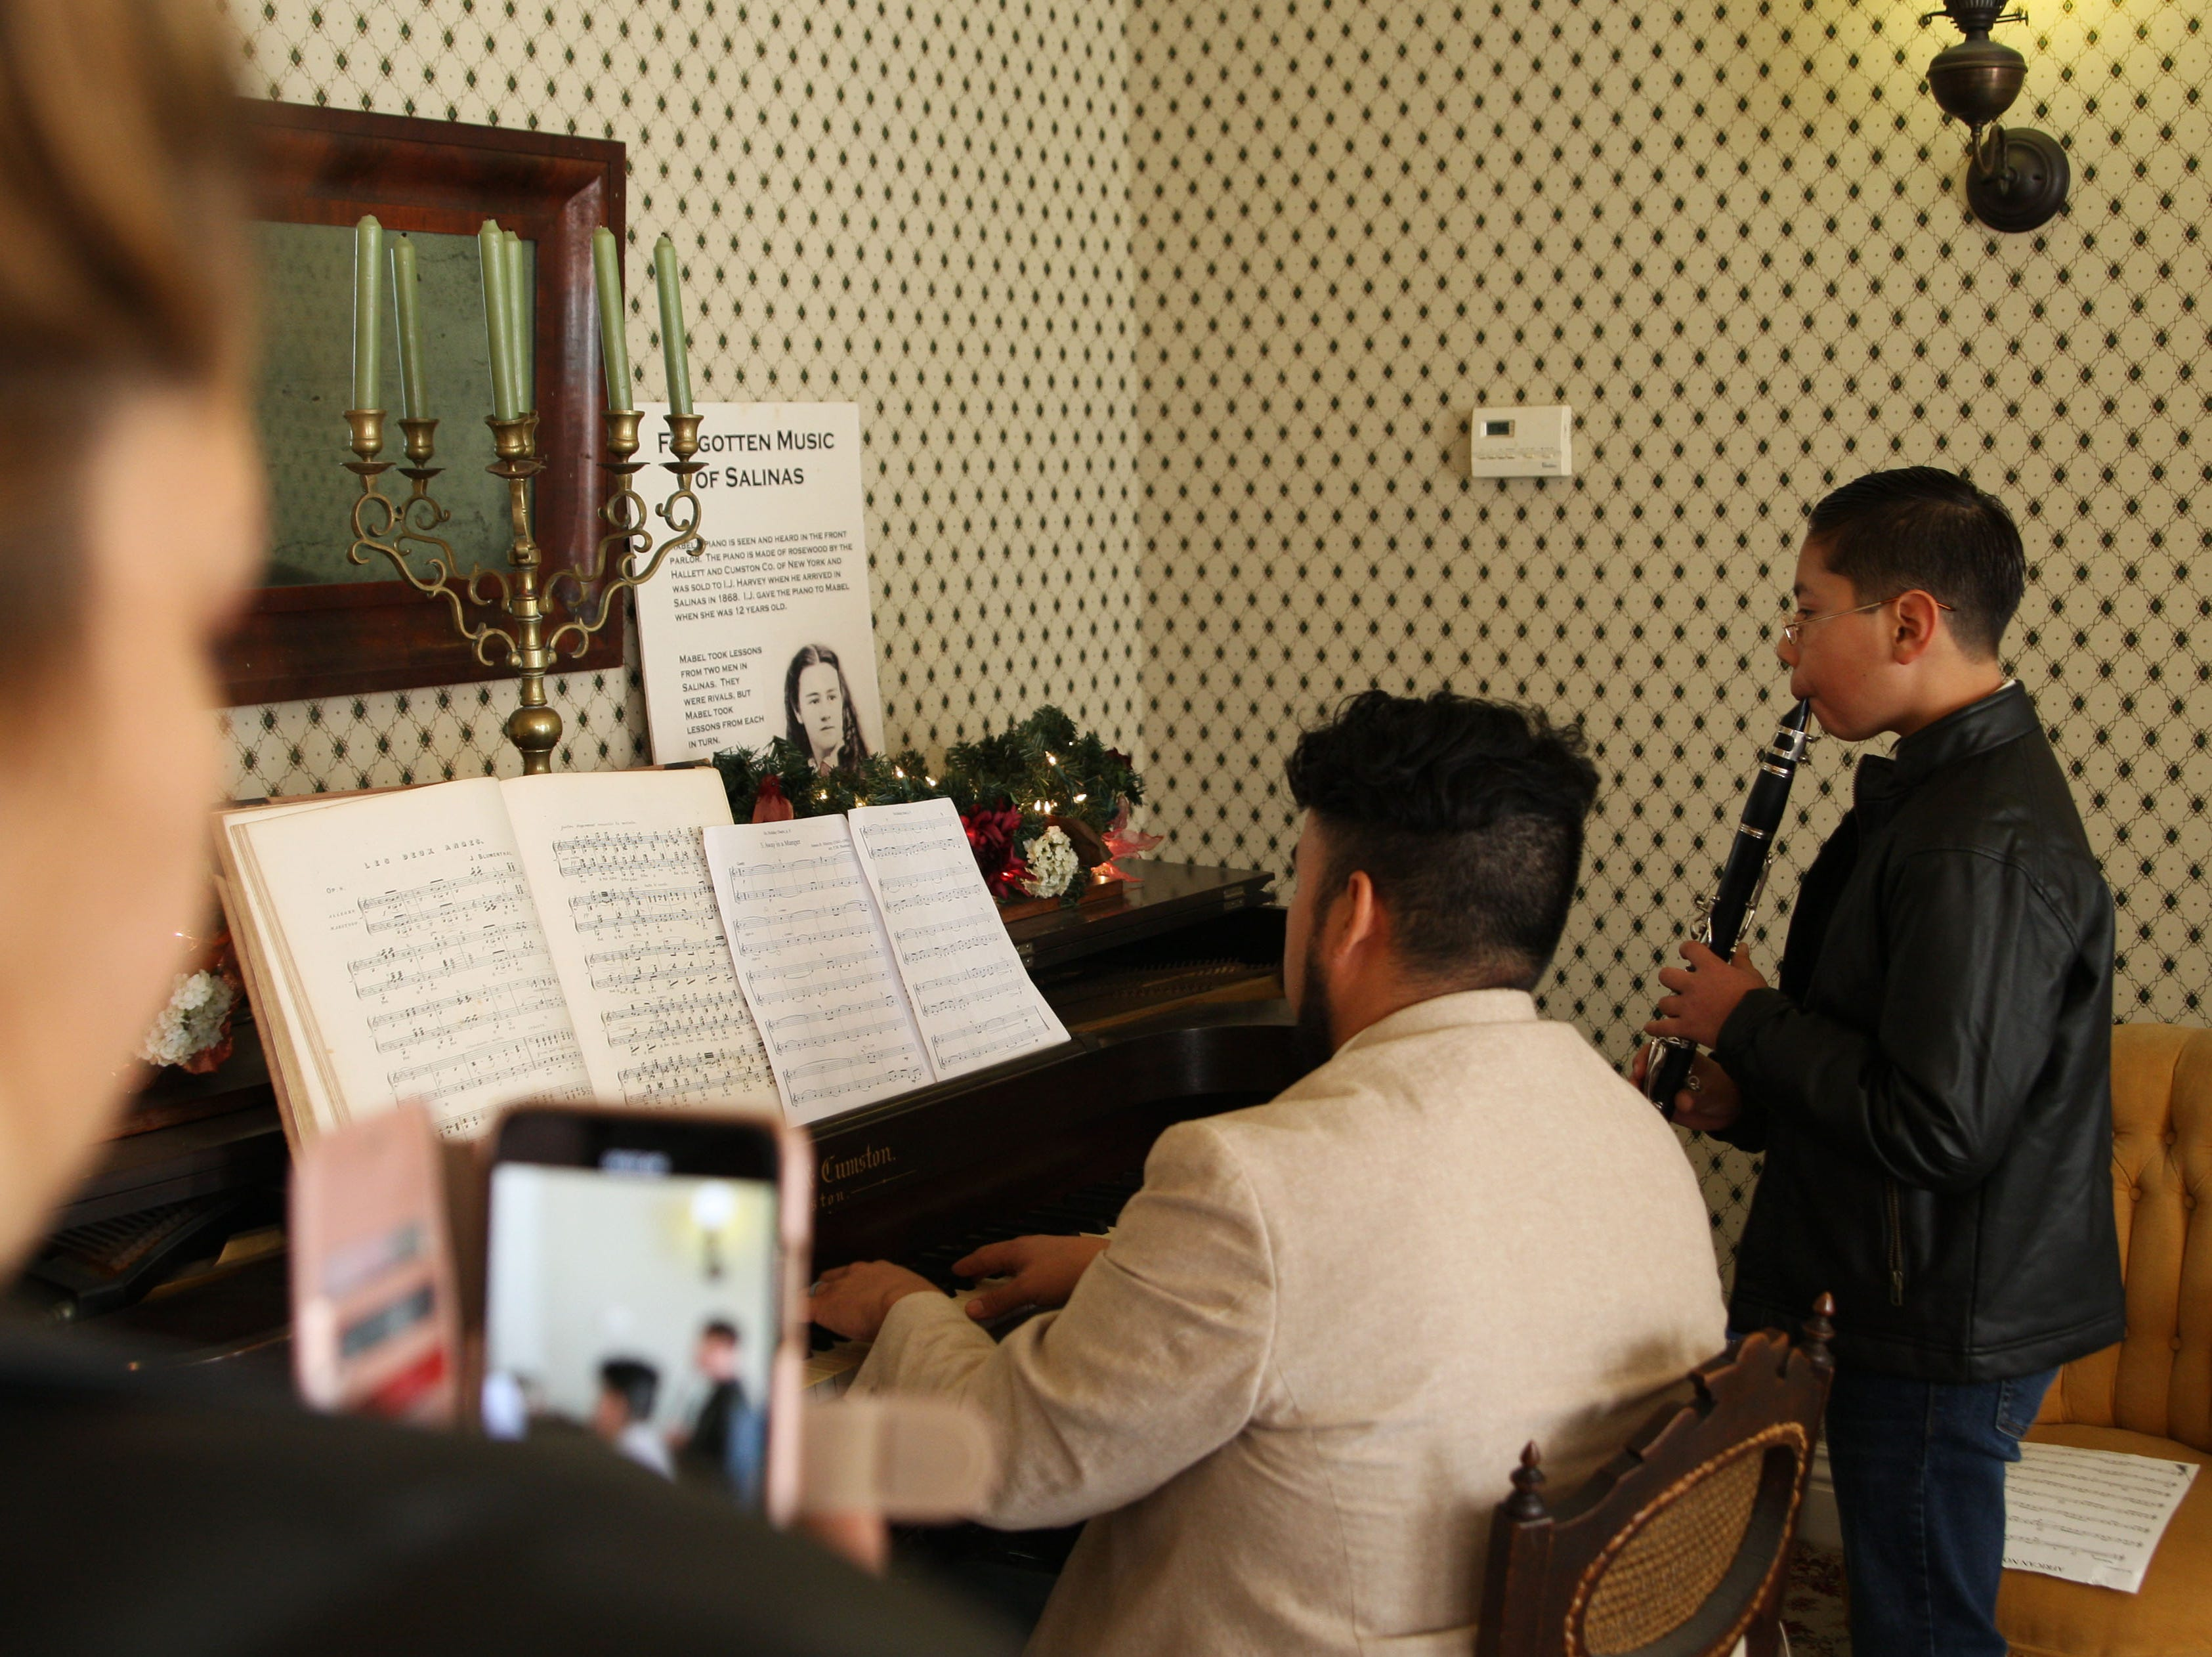 Local musicians play Christmas carols in the historic Harvey home. A woman films them.